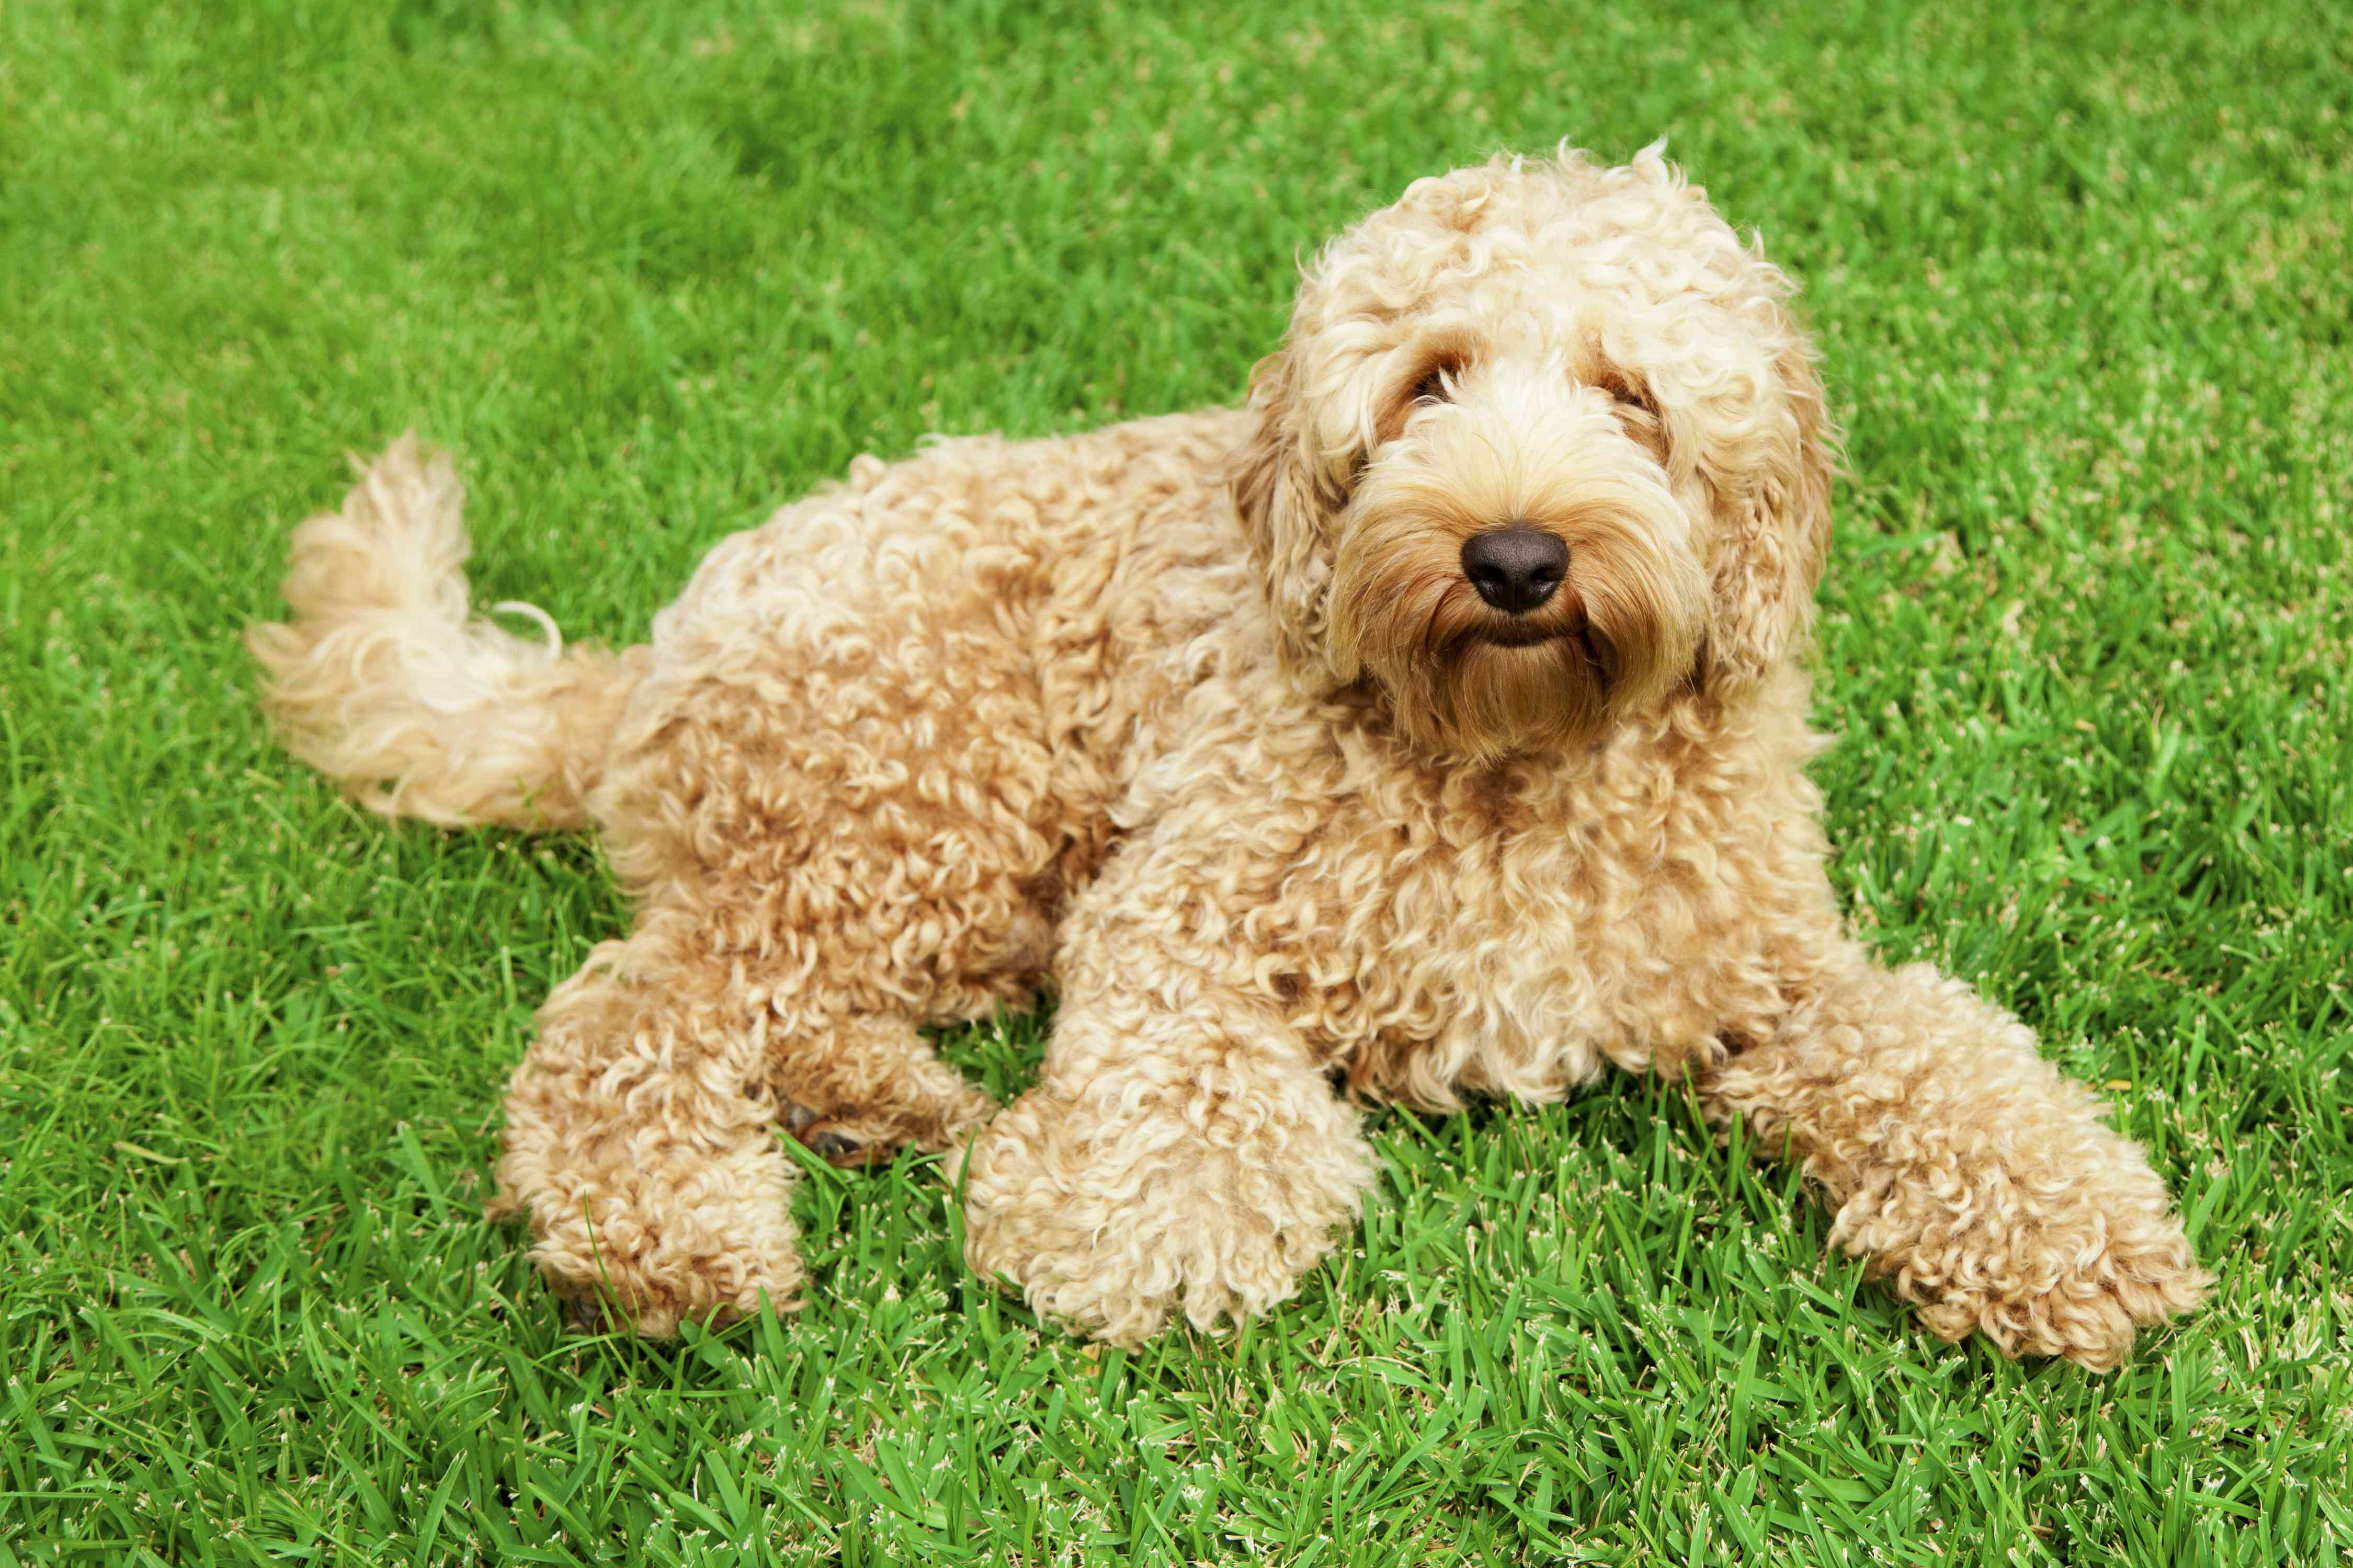 Labradoodle lying in a grassy field